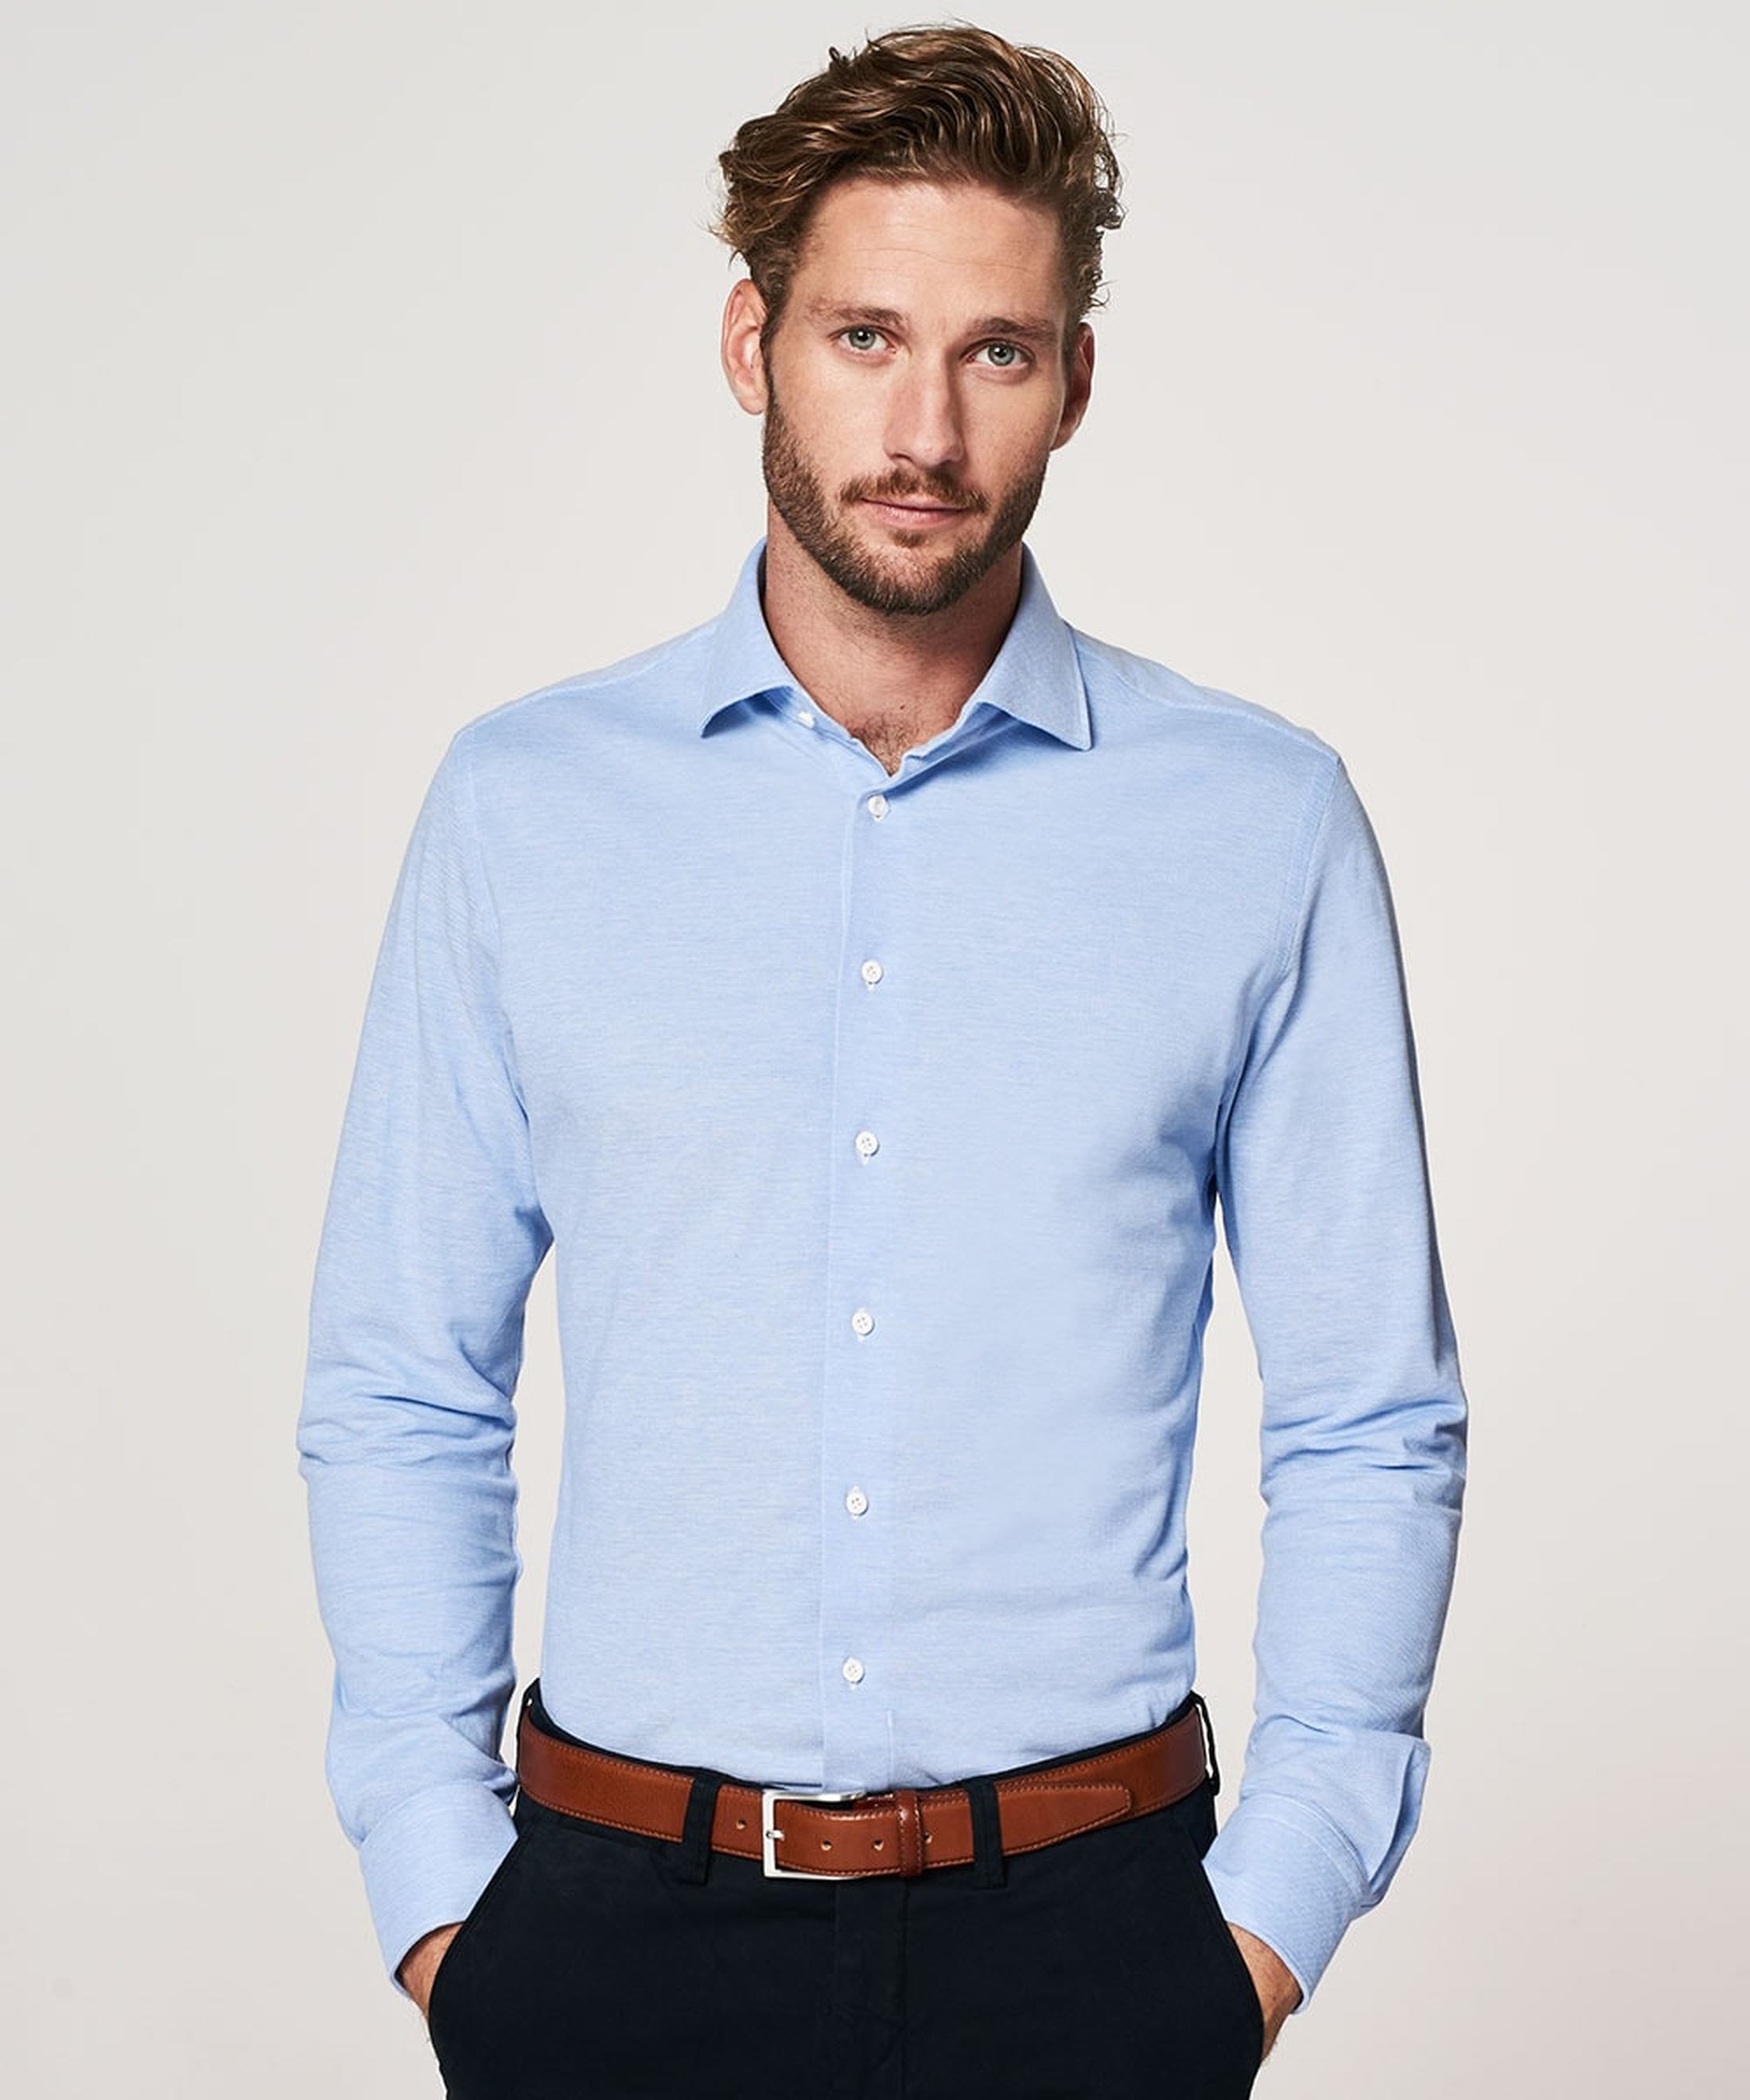 Profuomo Shirt Knitted Slim Fit Blue foto 4